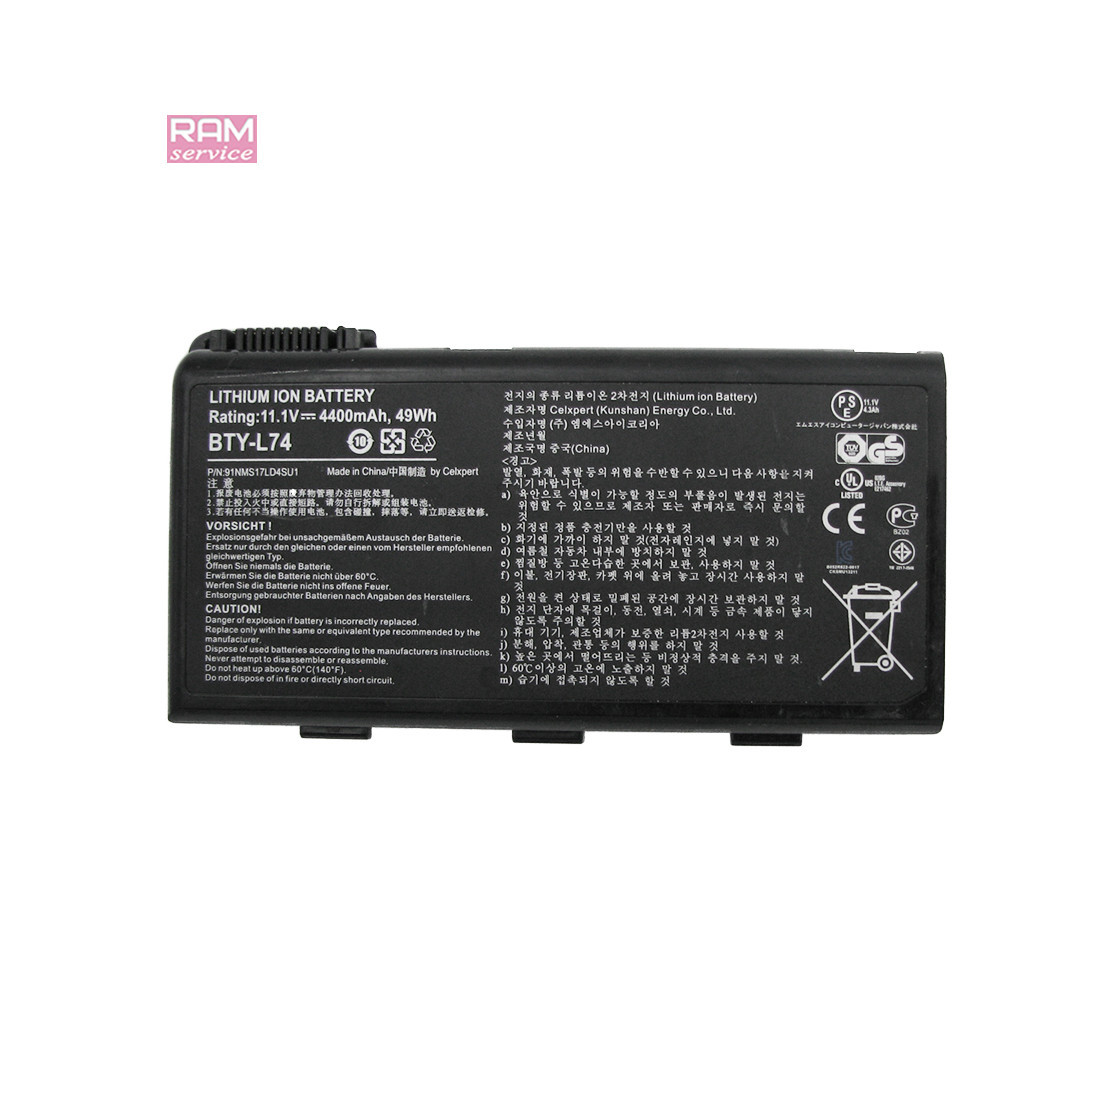 Батарея, акумулятор, BTY-L74, для MSI CR Series, MSI CX Series, MSI MS Series, MSI A Series, Li-ion Battery,